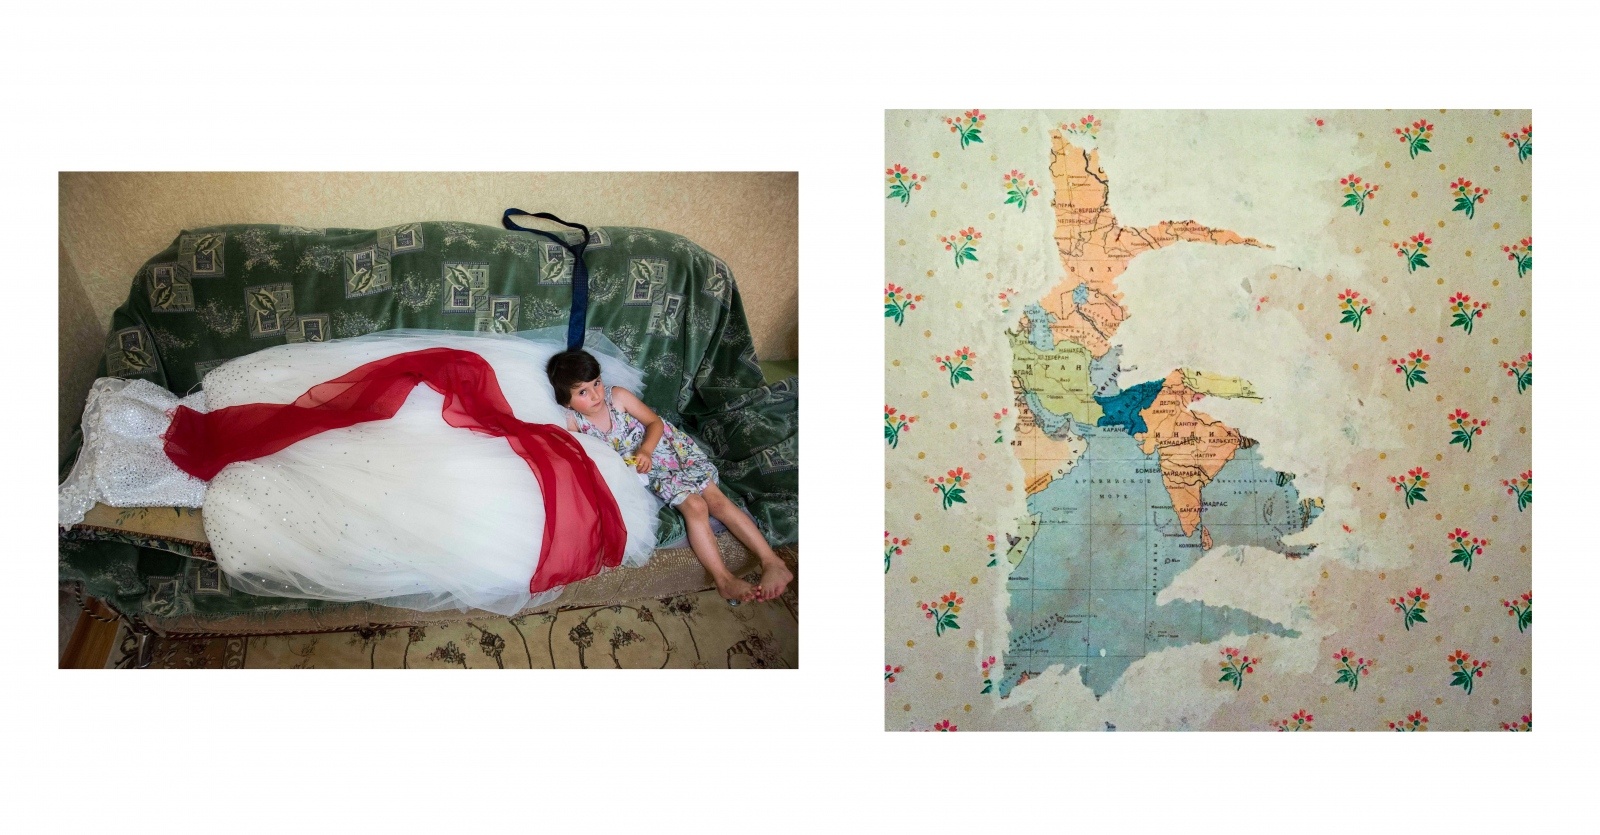 Art and Documentary Photography - Loading Way_bed_man.jpg